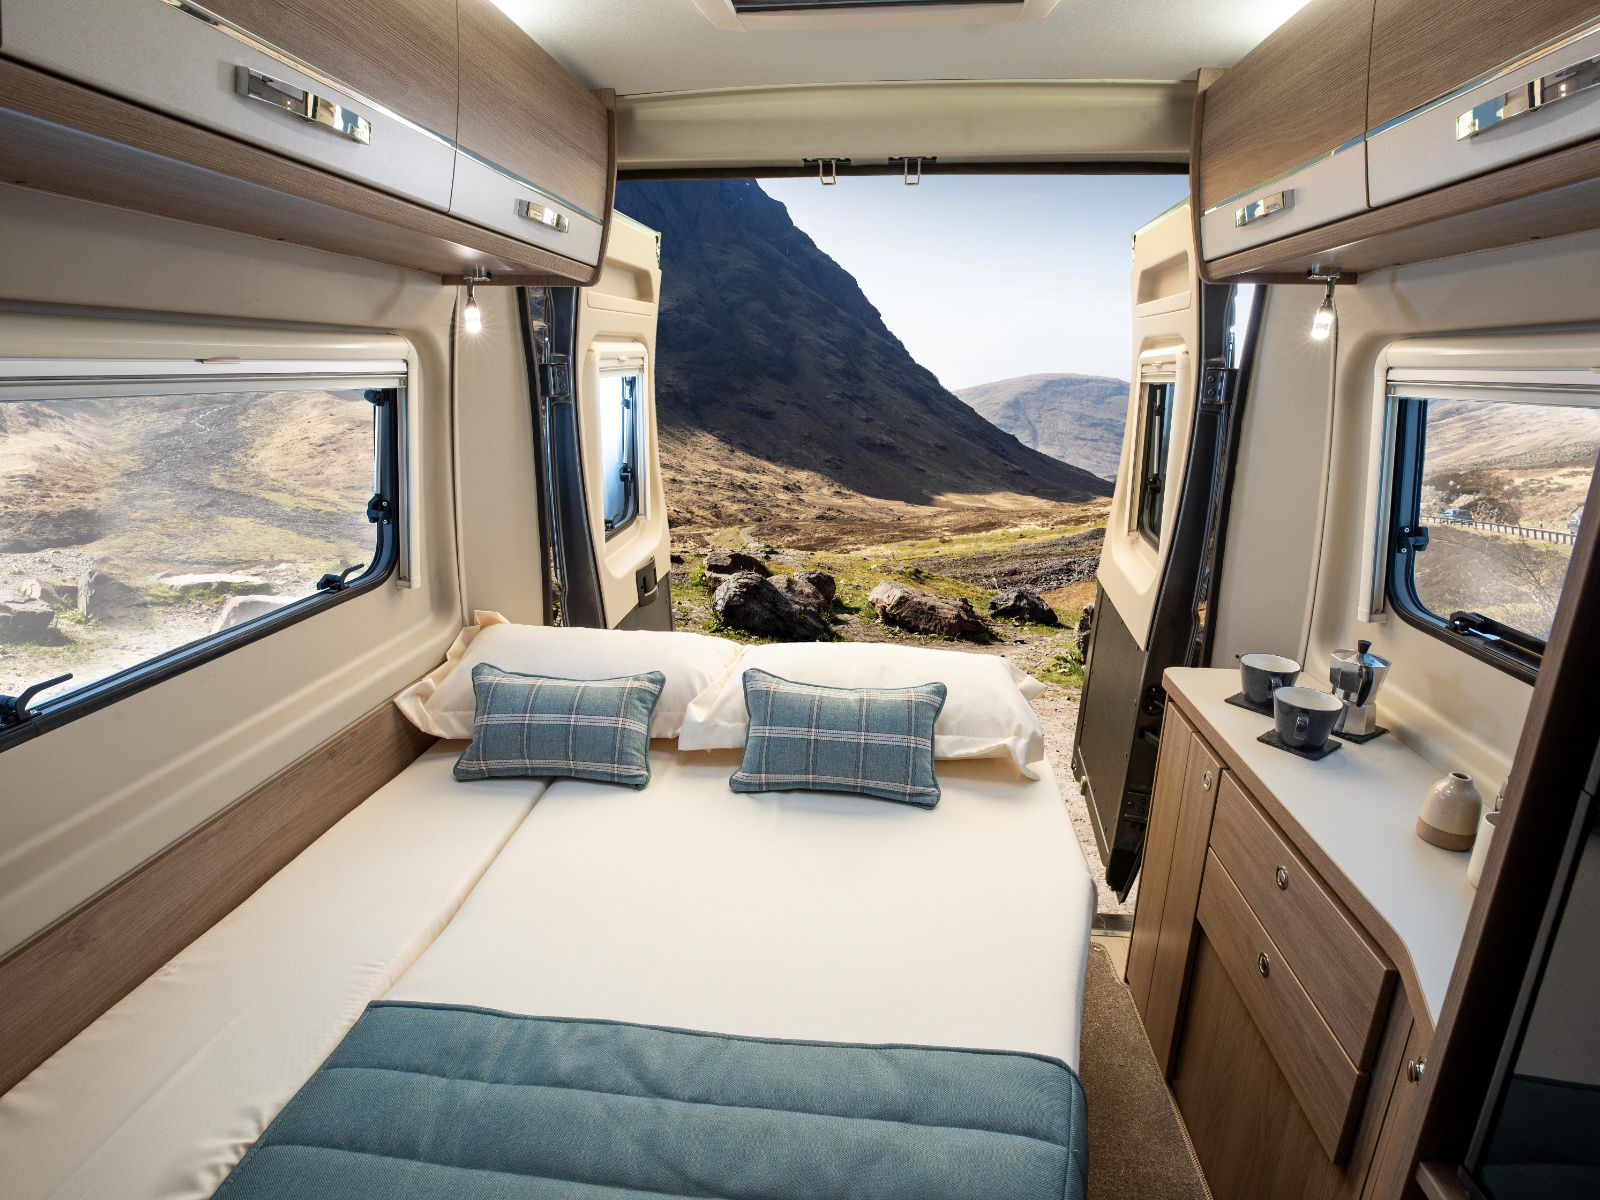 Bedroom layout with backdoors open revealing a mountain backdrop